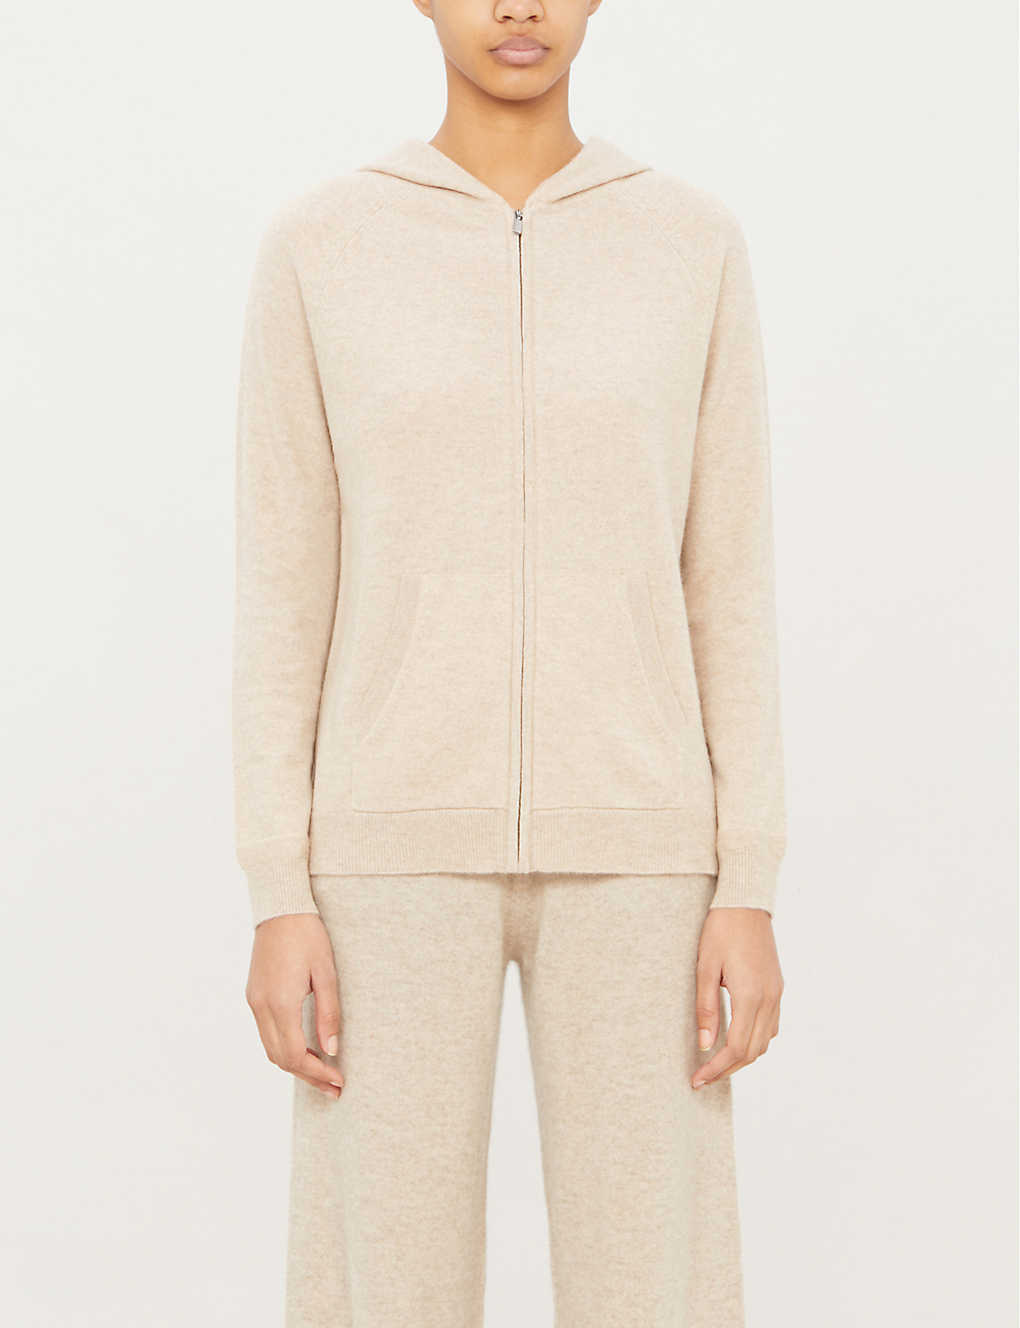 CHINTI AND PARKER: 'The Hoodie' cashmere hoody